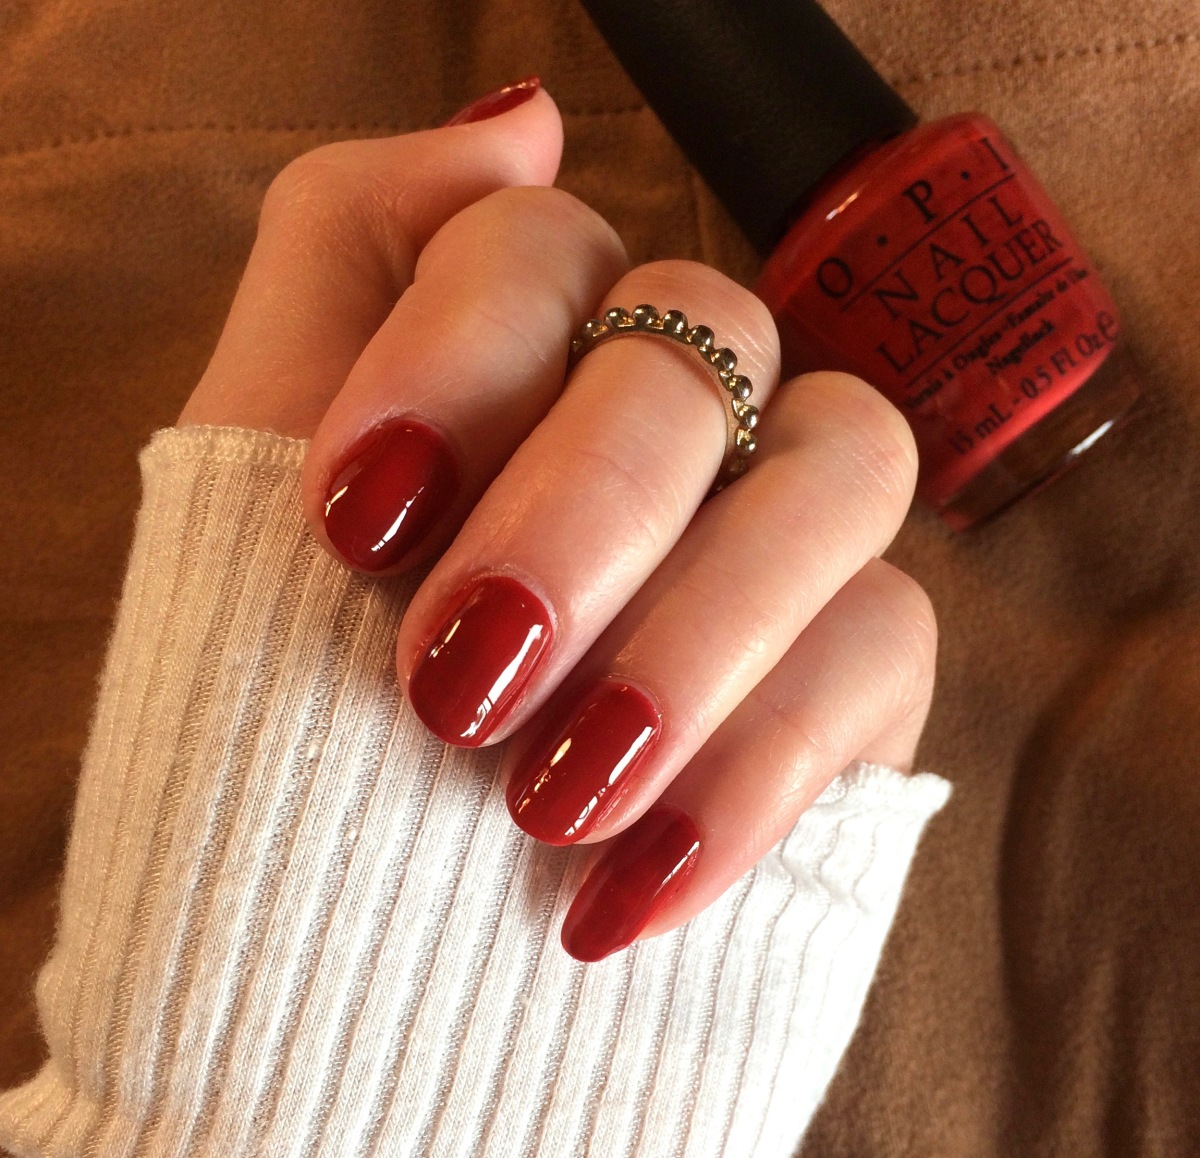 Fall Manicure: OPI's First Date At The Golden Gate